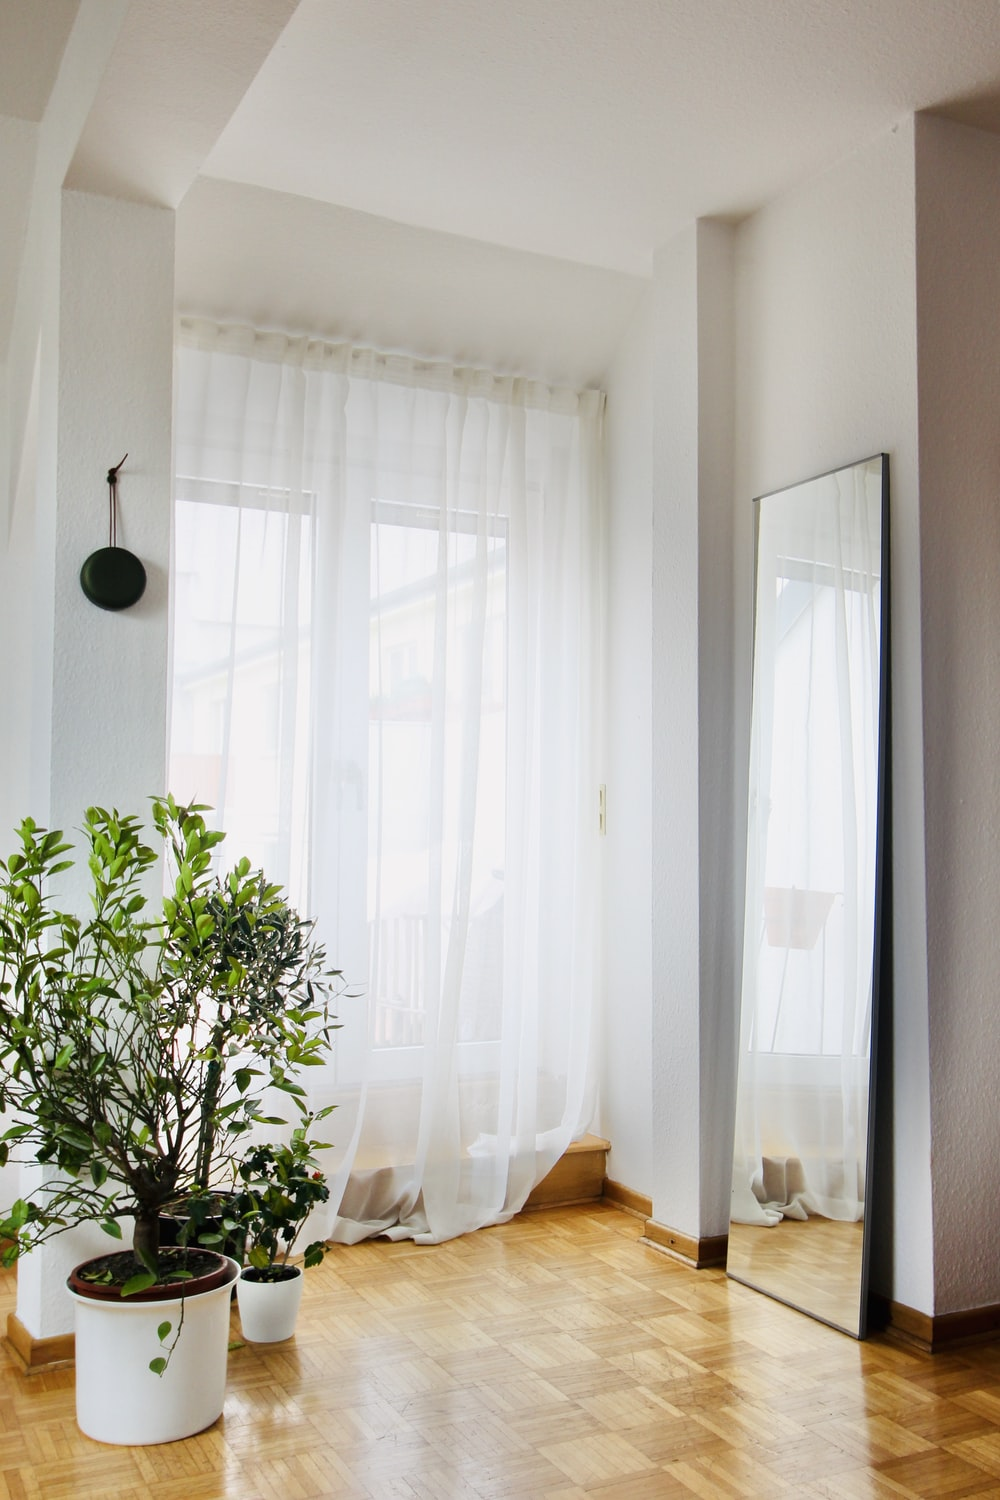 green potted plant near white window curtain